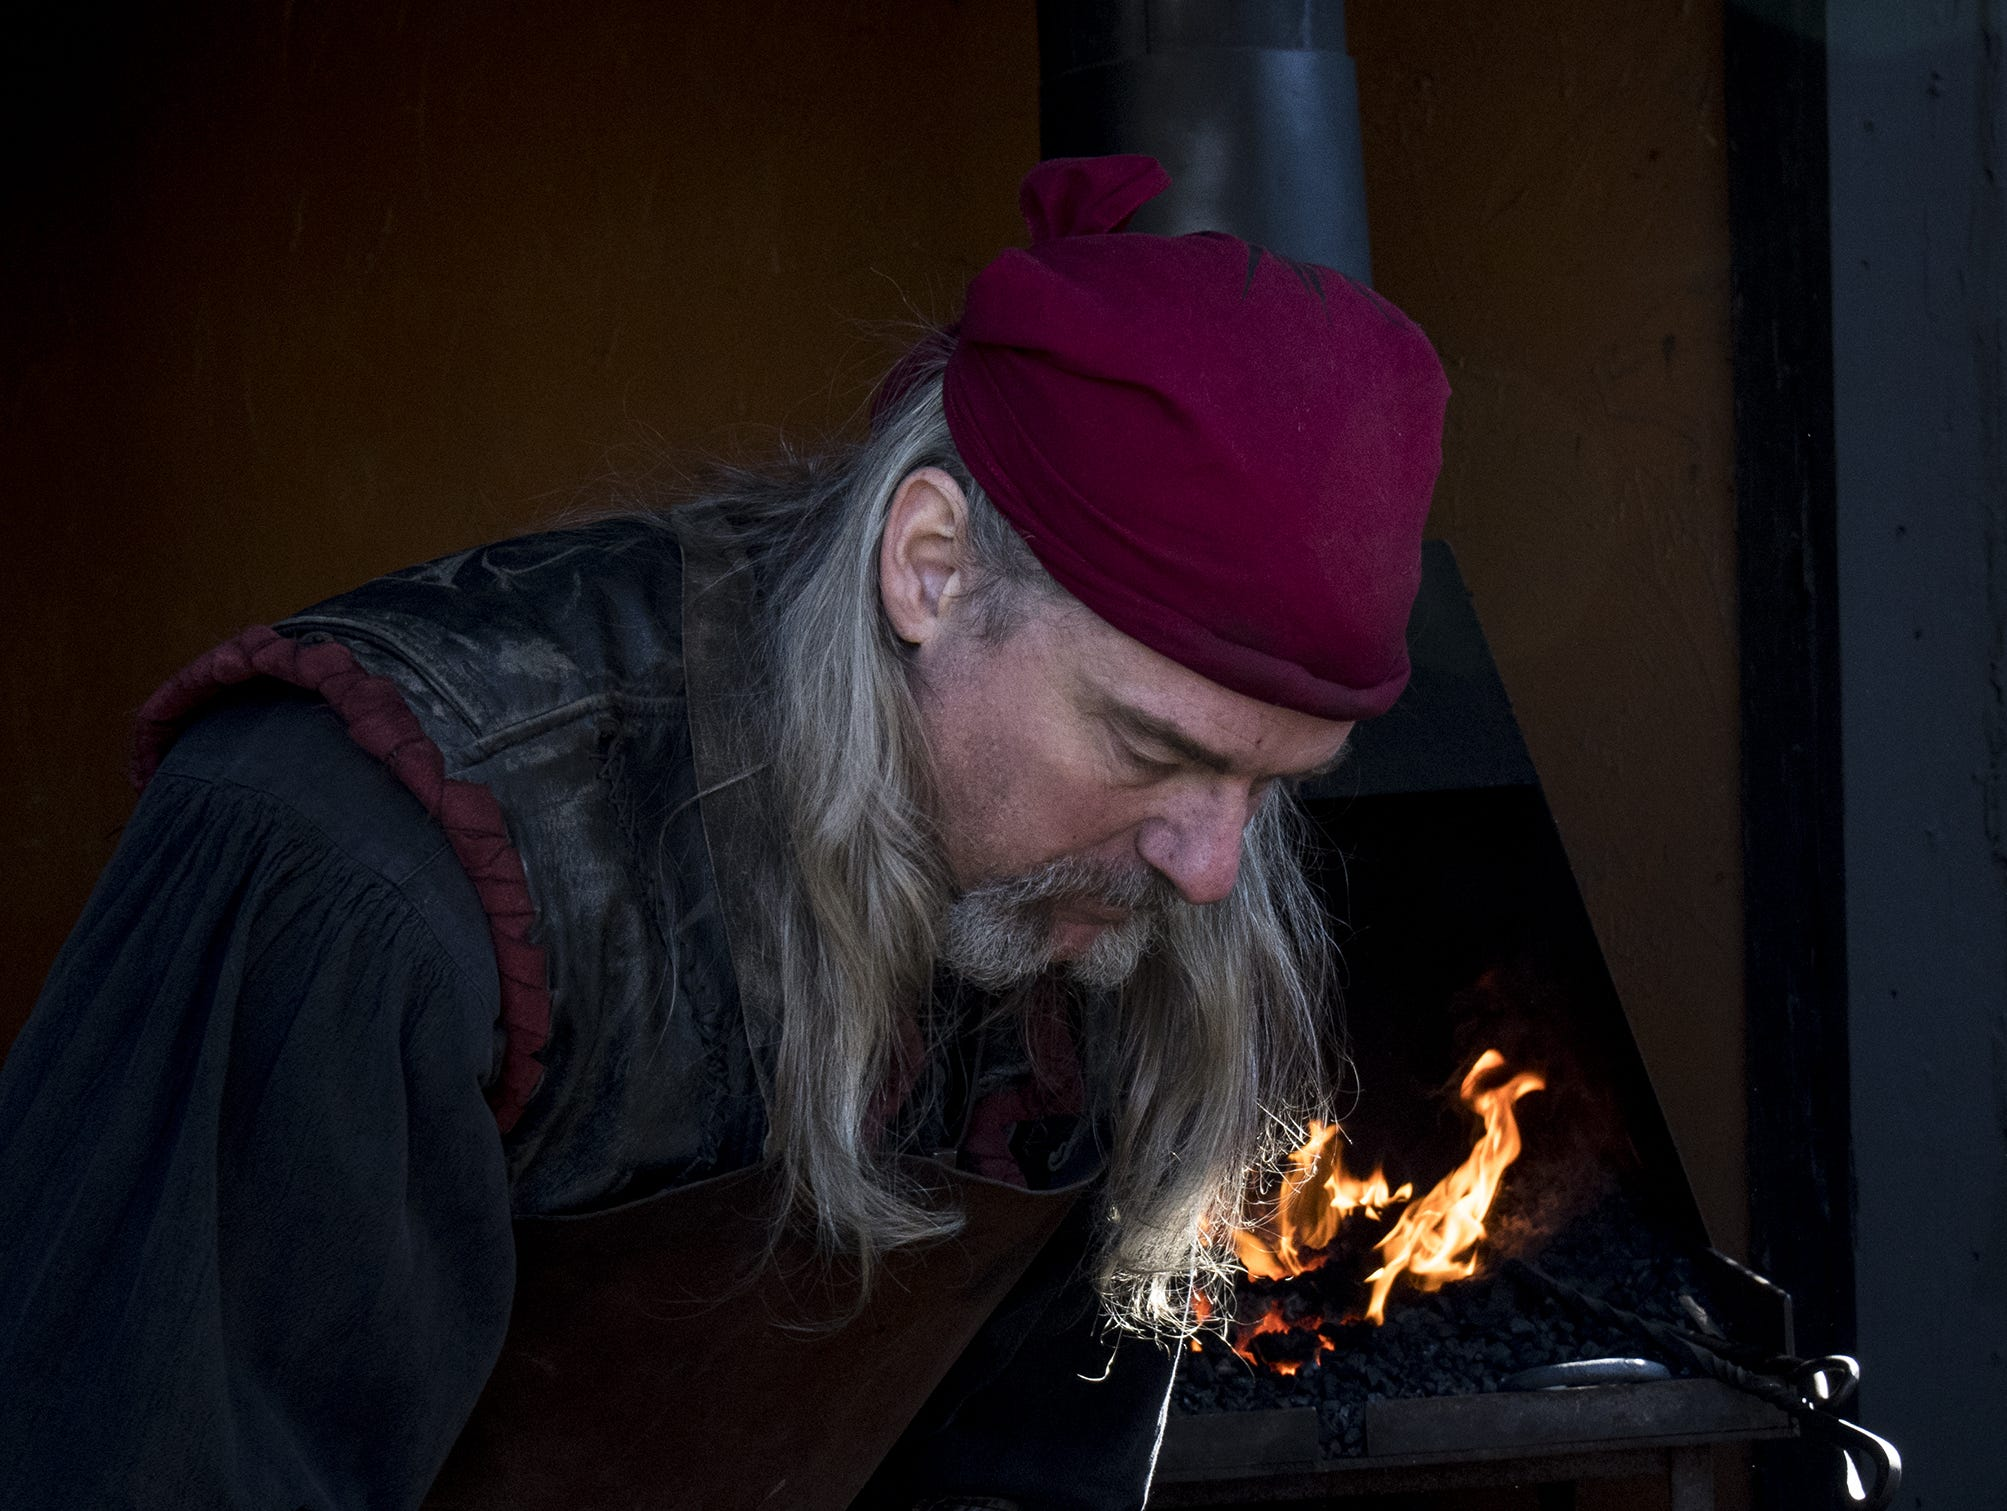 Vincent Krava, owner of Dragon's Head Forge, showcases his talent as a blacksmith during the Ohio Renaissance Festival Sunday, October 21, 2018 in Waynesville, Ohio.